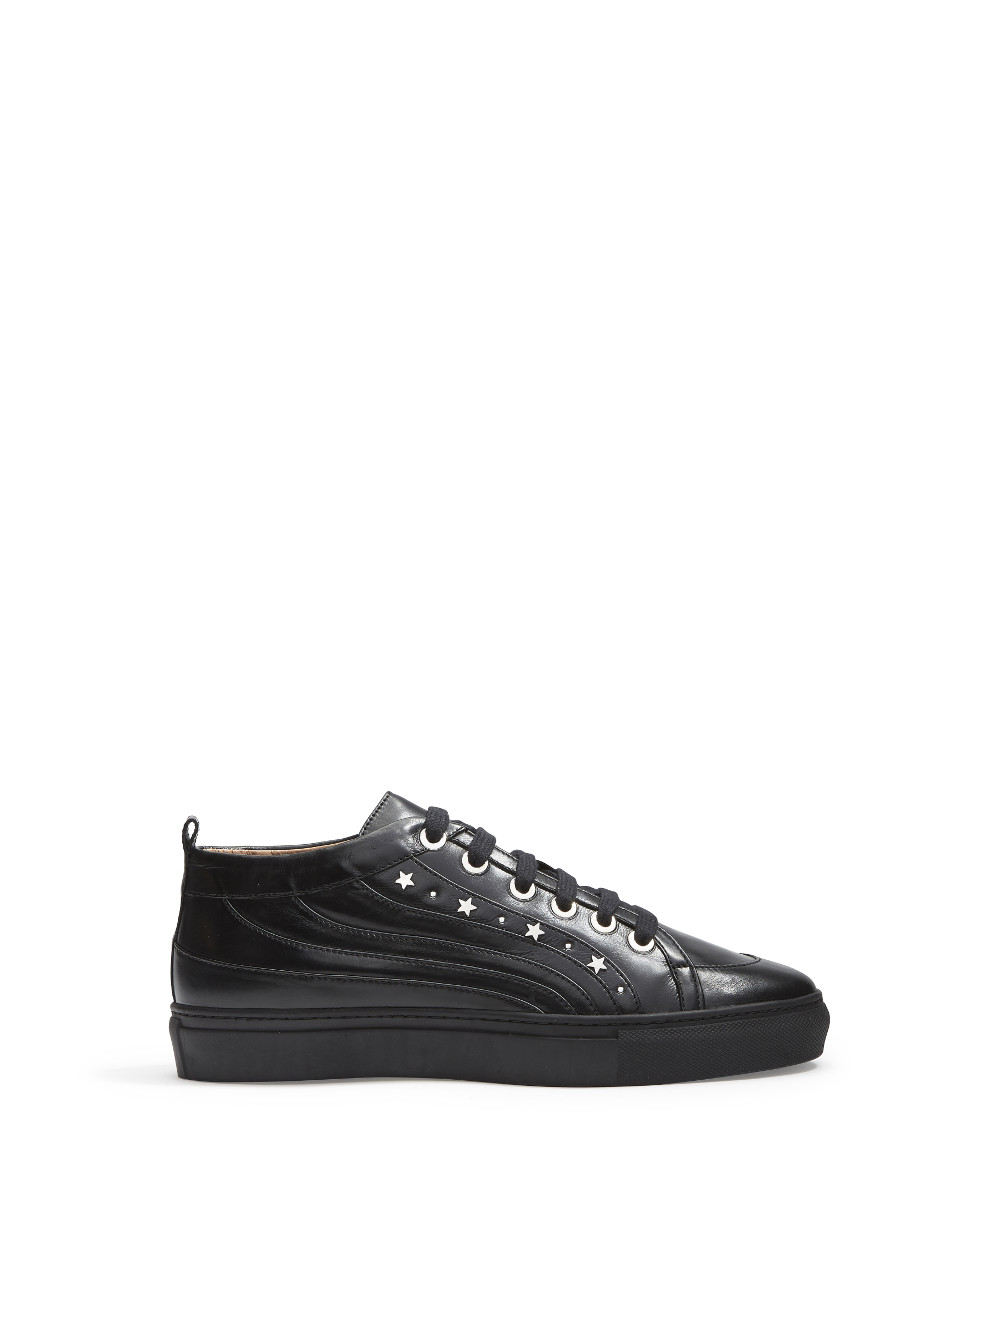 Chaussures Kool Start Studs - Laurence Dacade